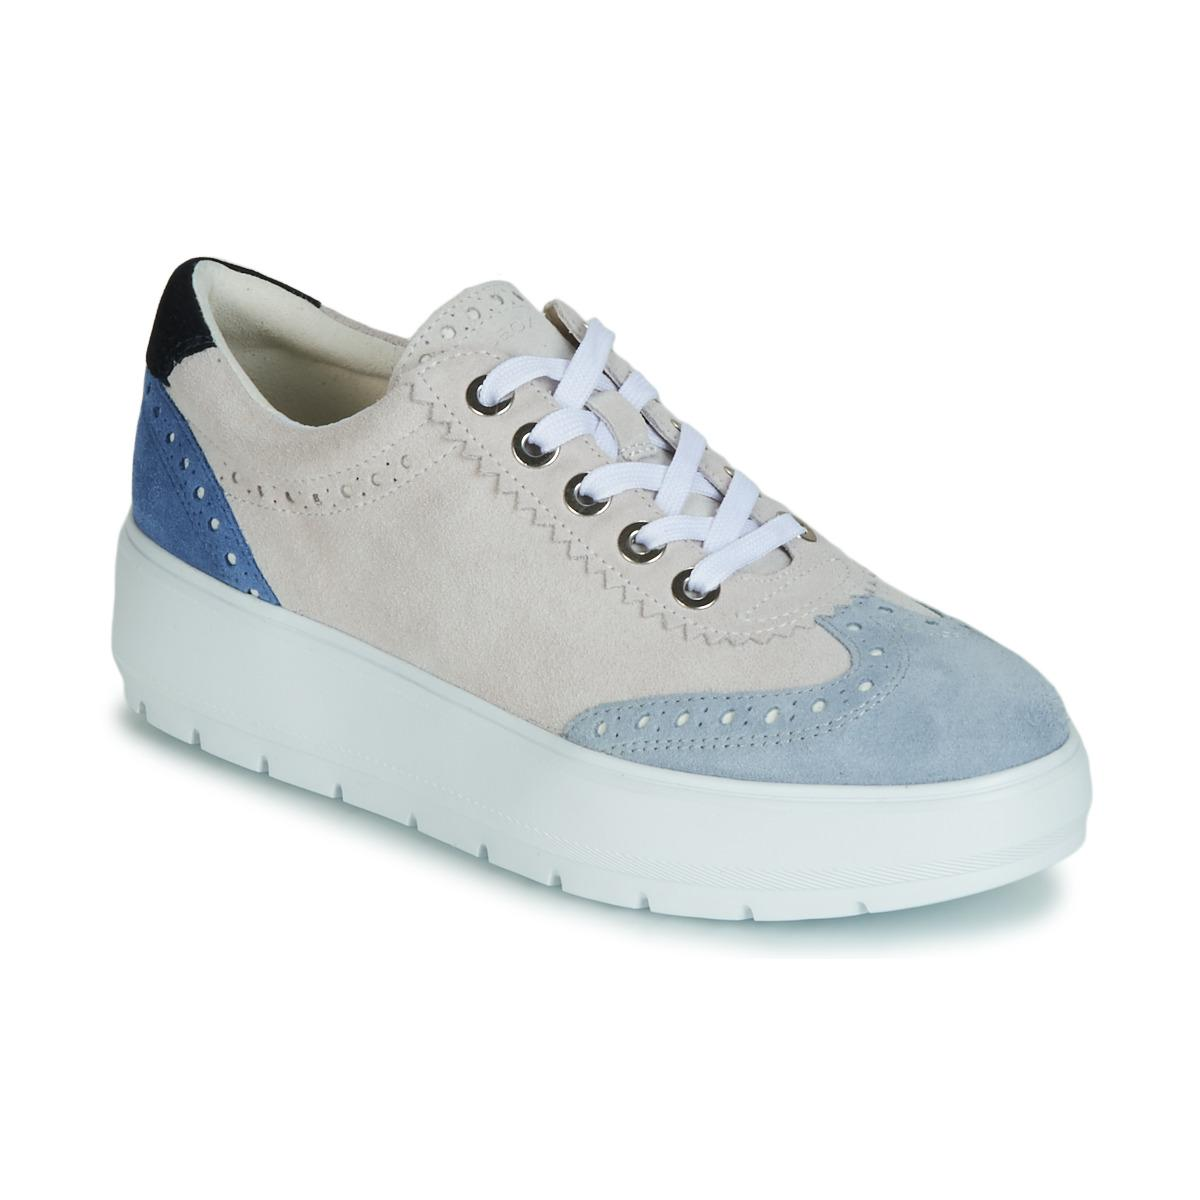 a9a19c7dce75d Geox D Kaula Women's Shoes (trainers) In White in White - Lyst